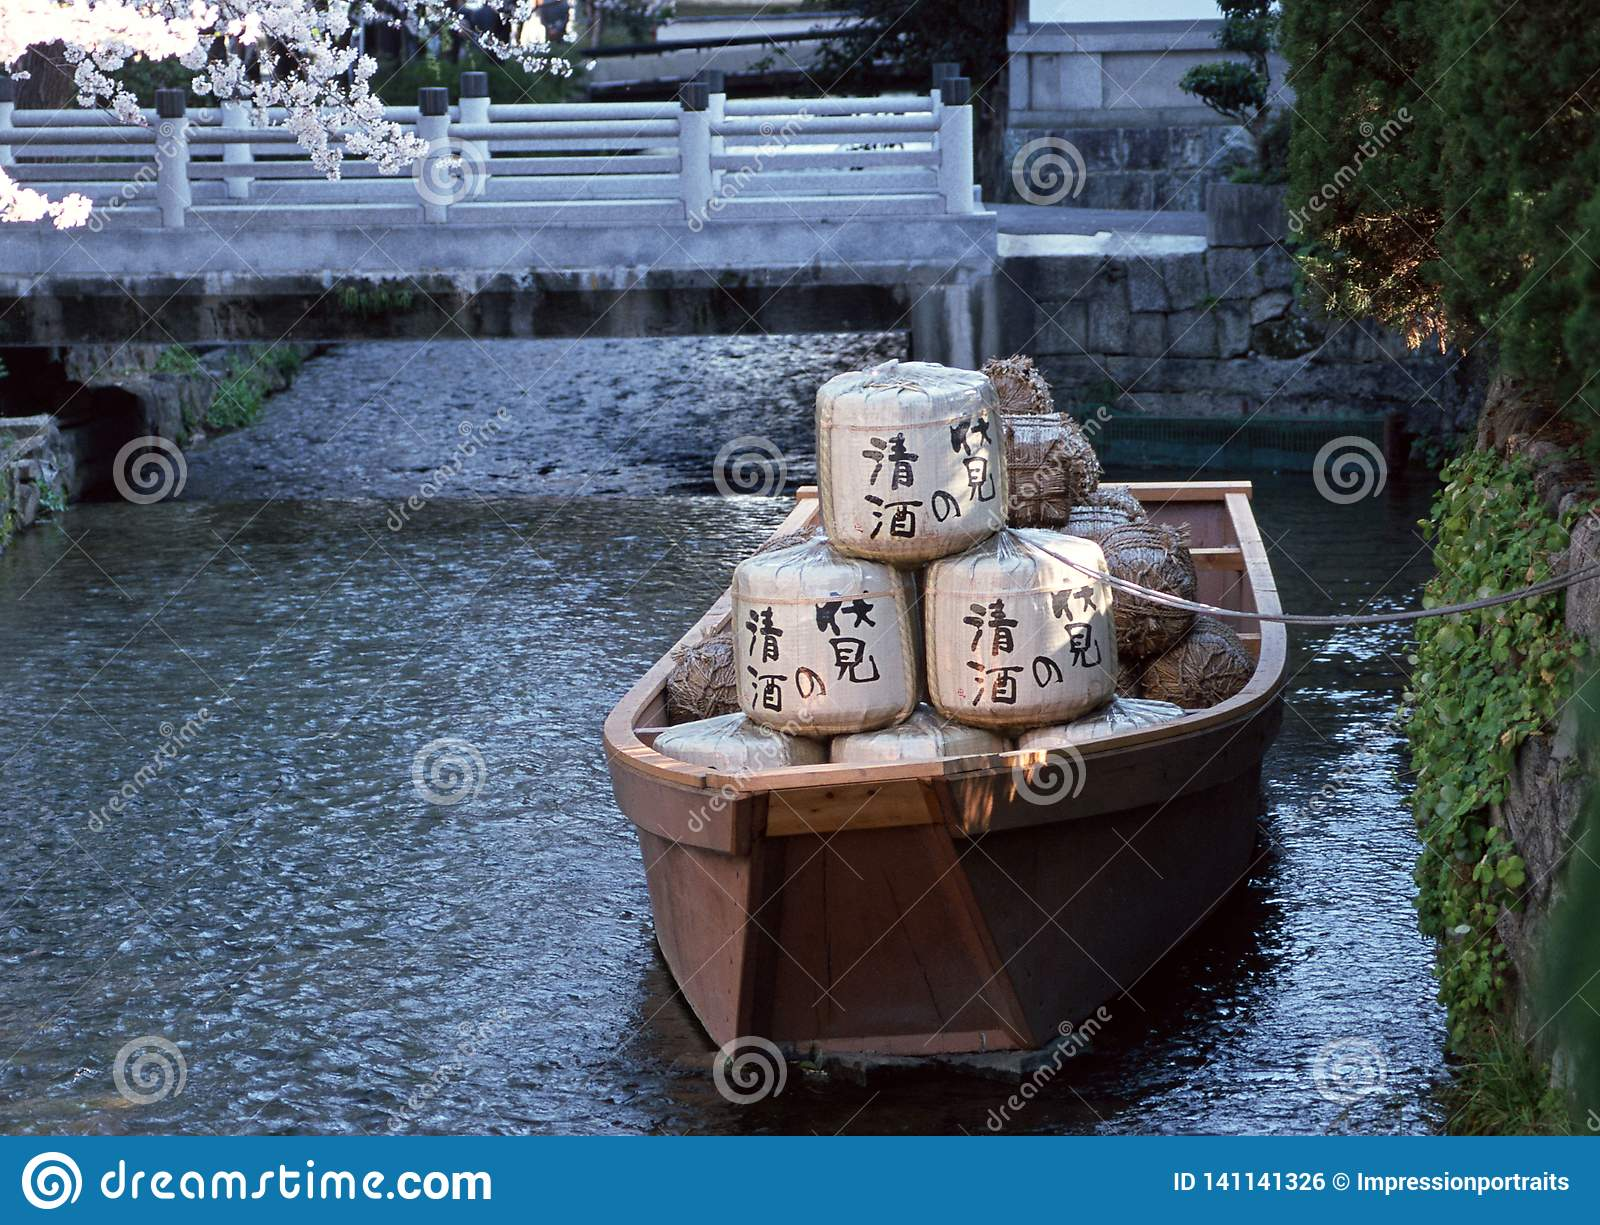 Japanese boat with goods in a river tied to the bank with a rope background